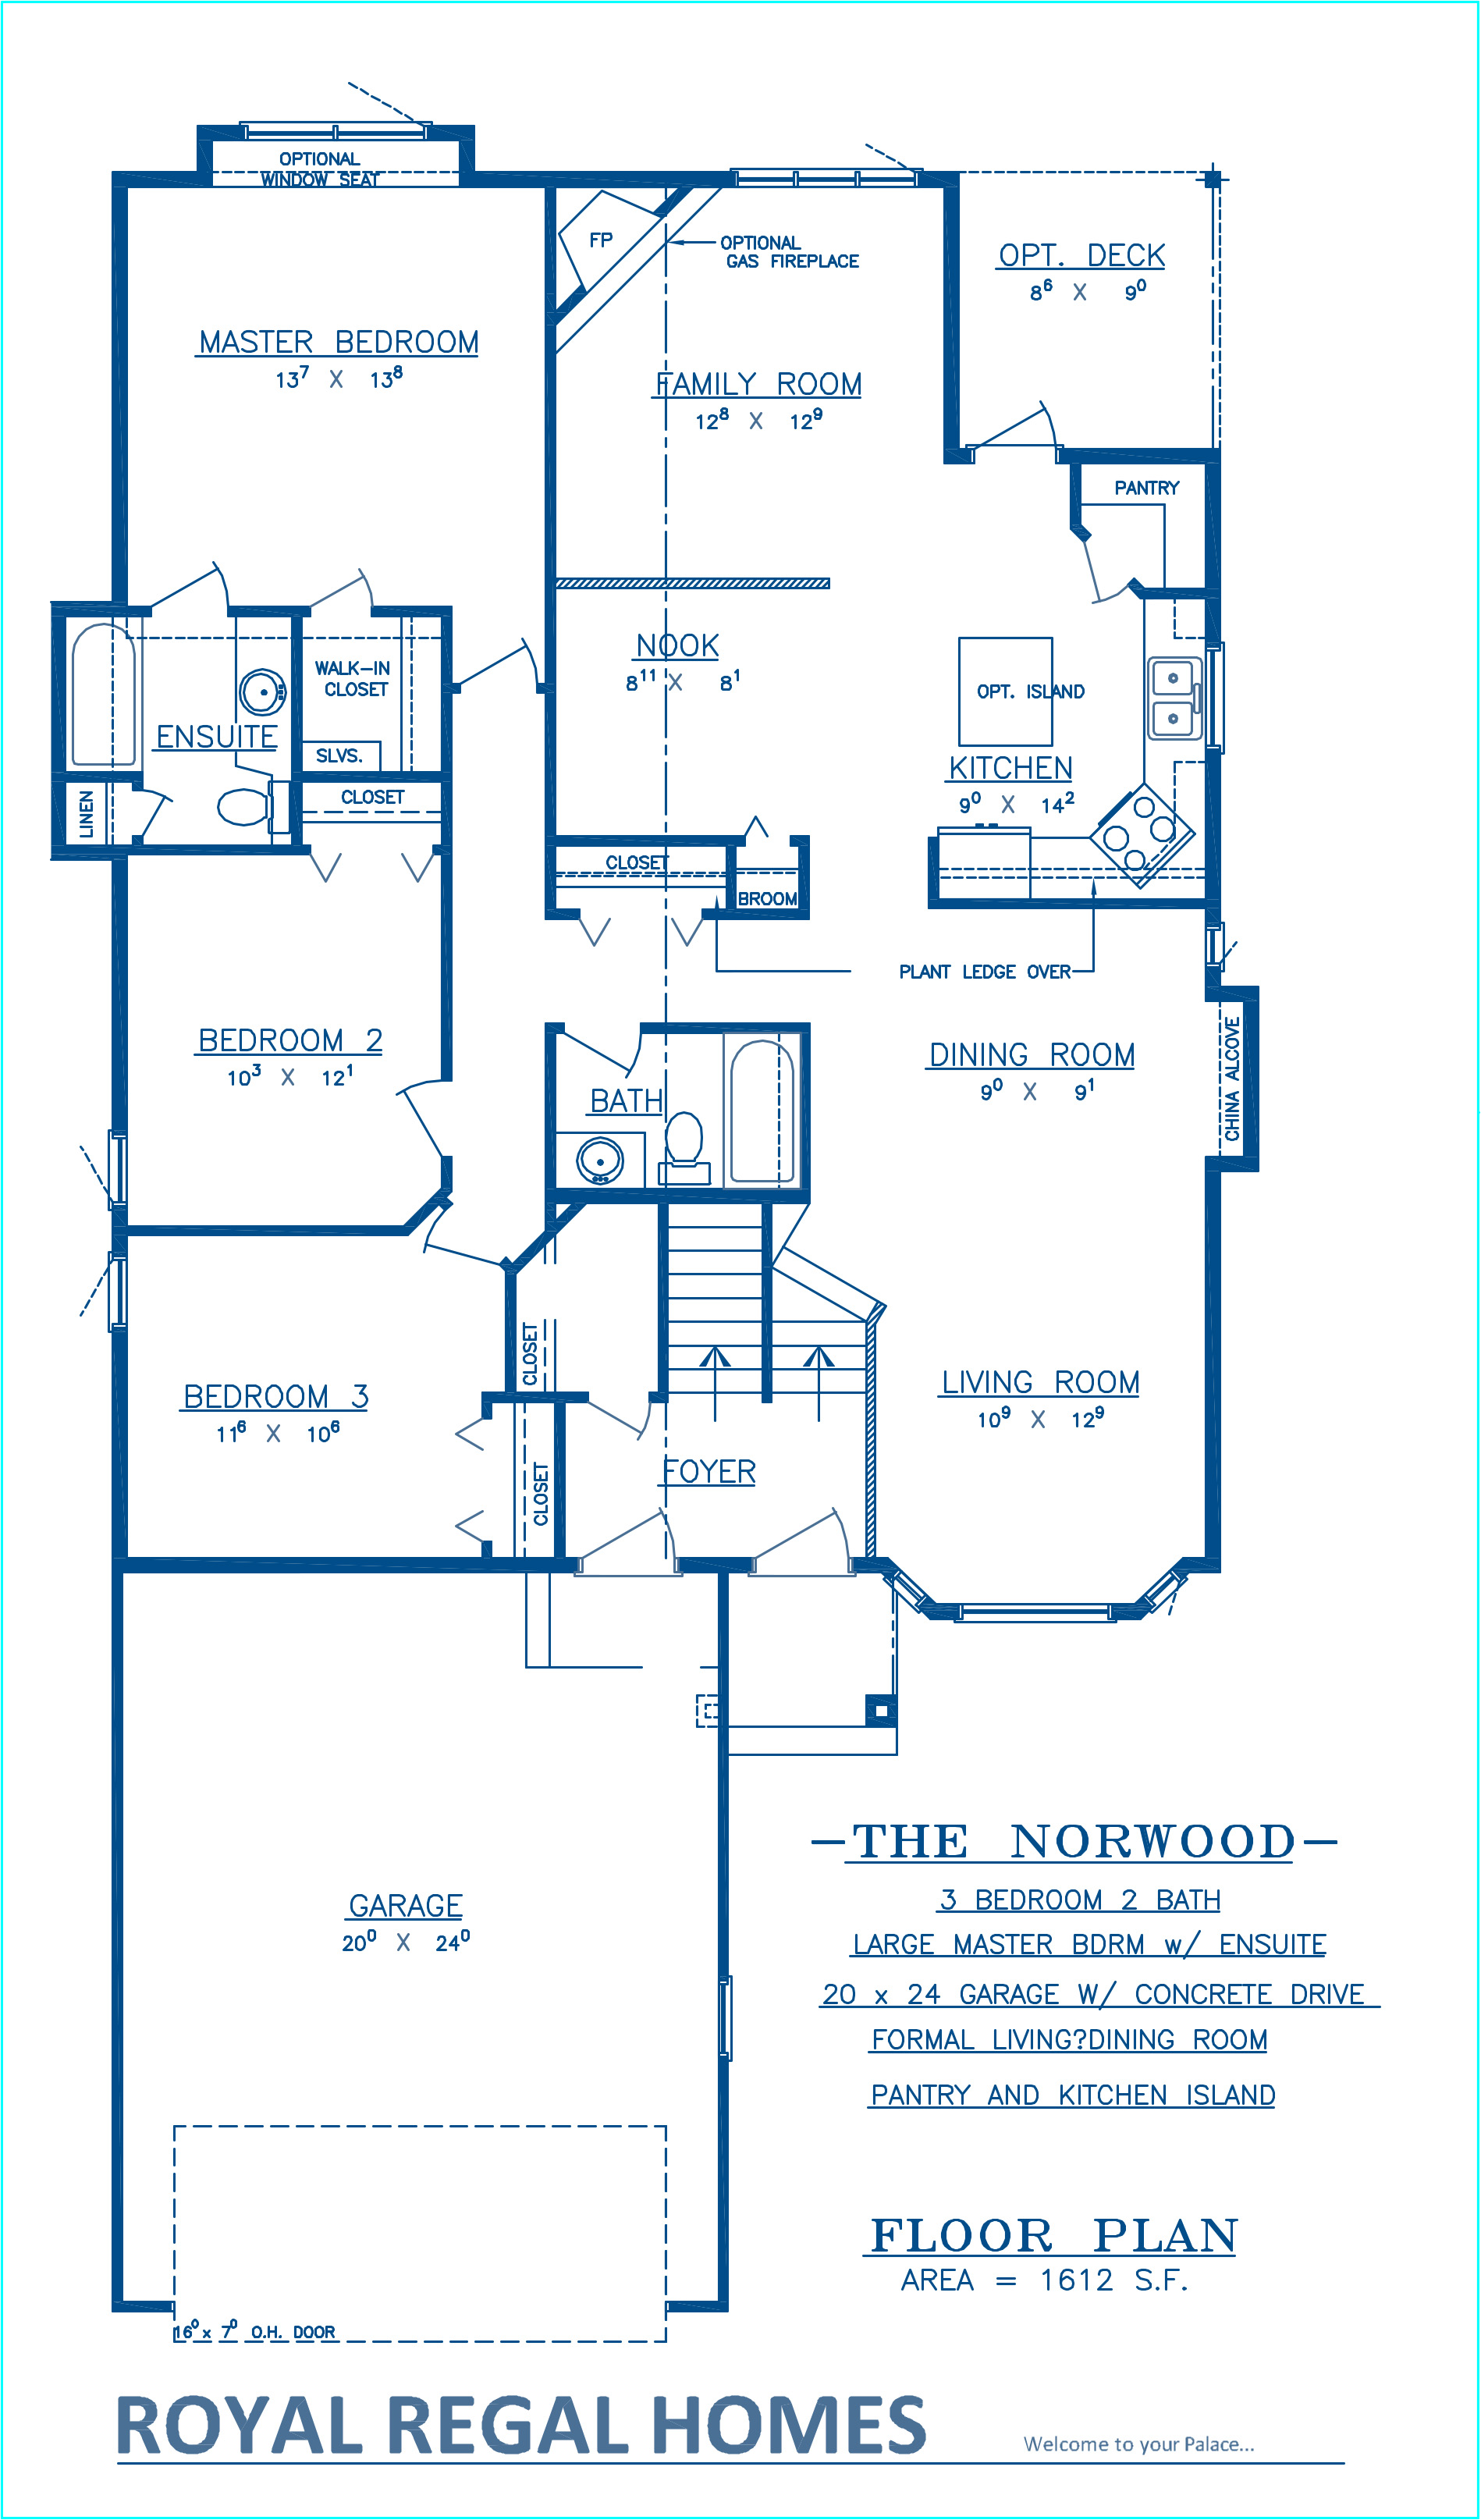 Norwood Floor Plan